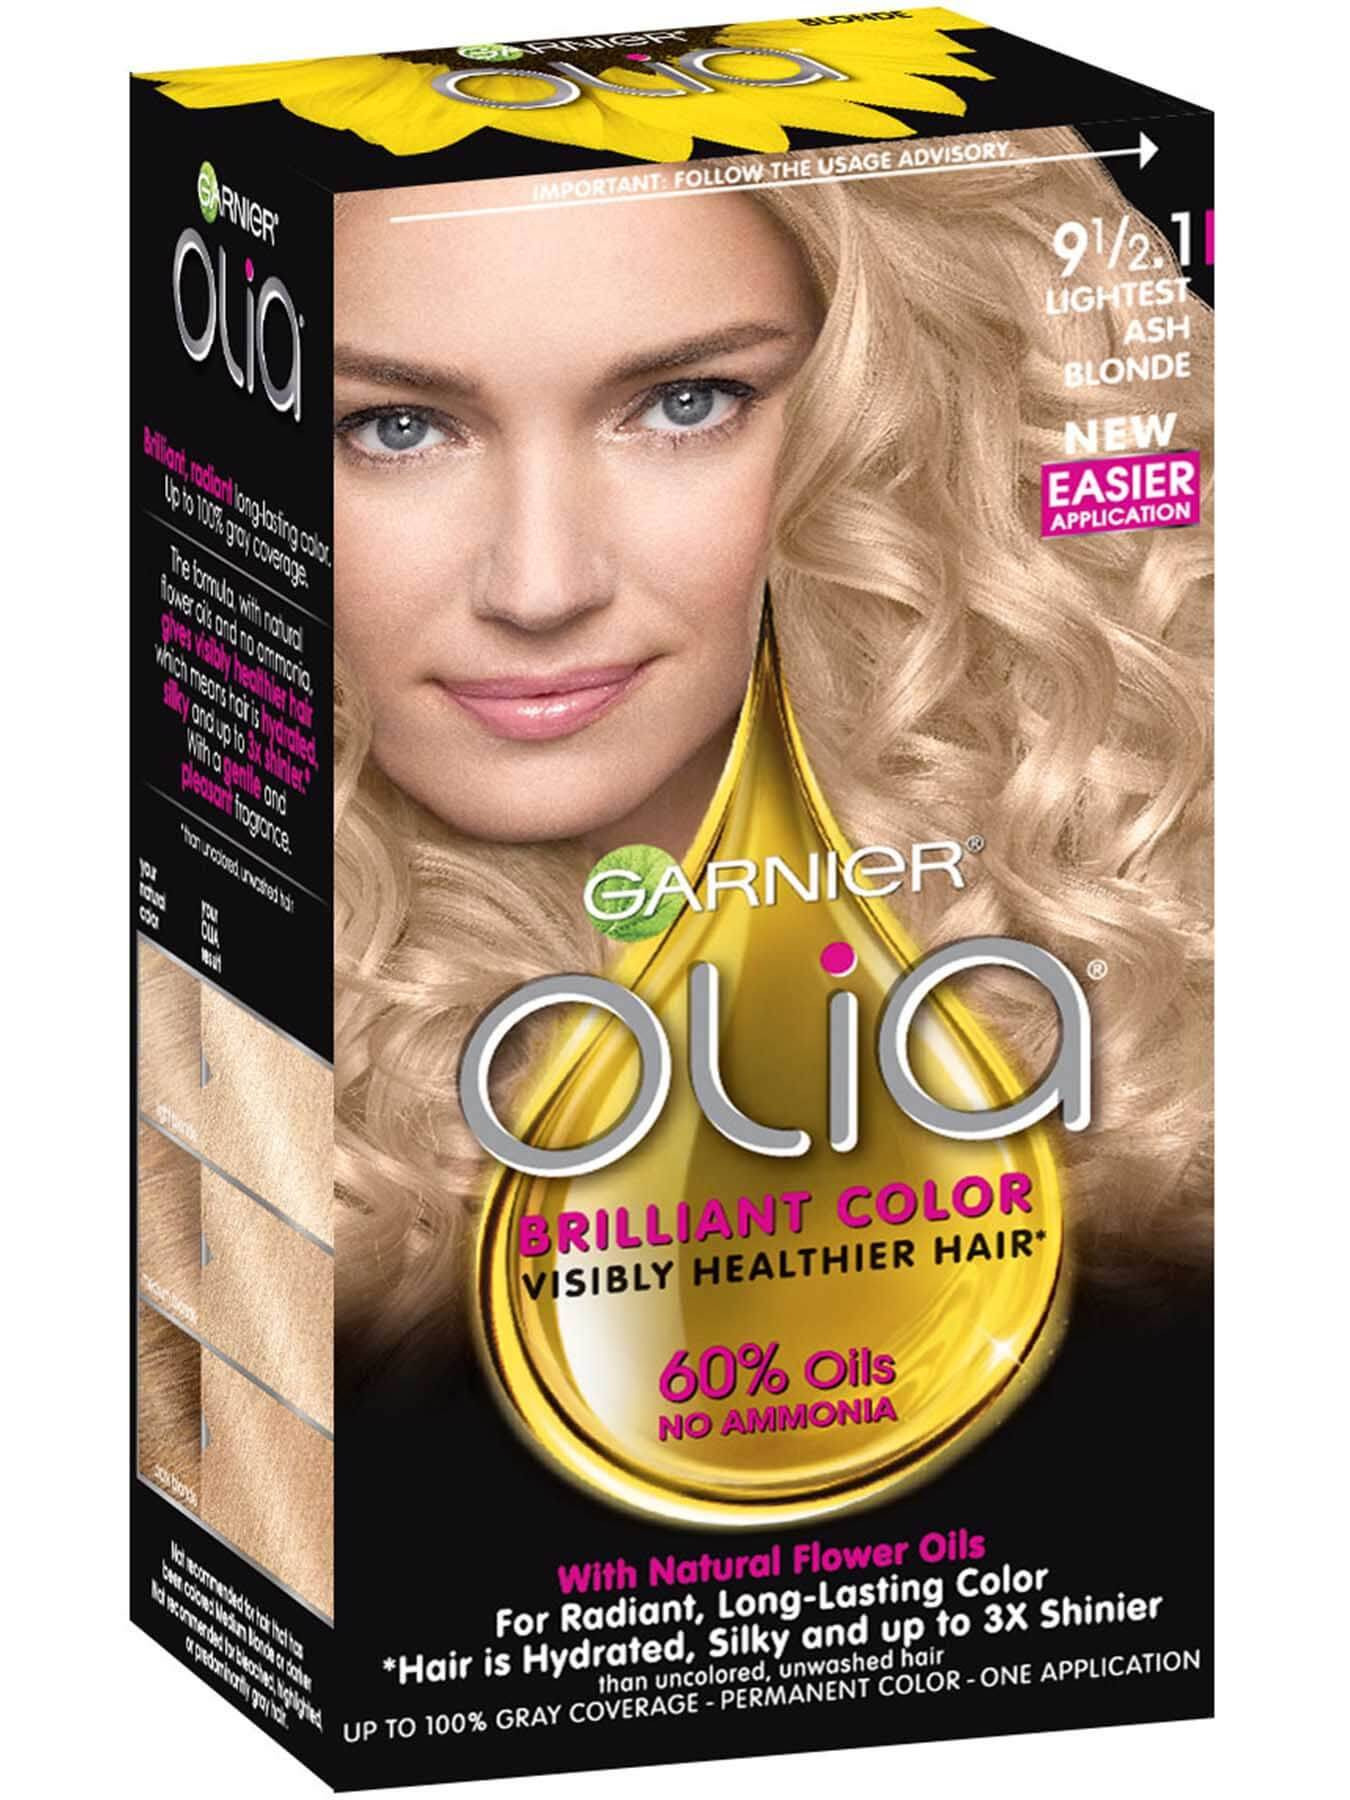 Olia Ammonia Free Lightest Cool Blonde Hair Color Garnier